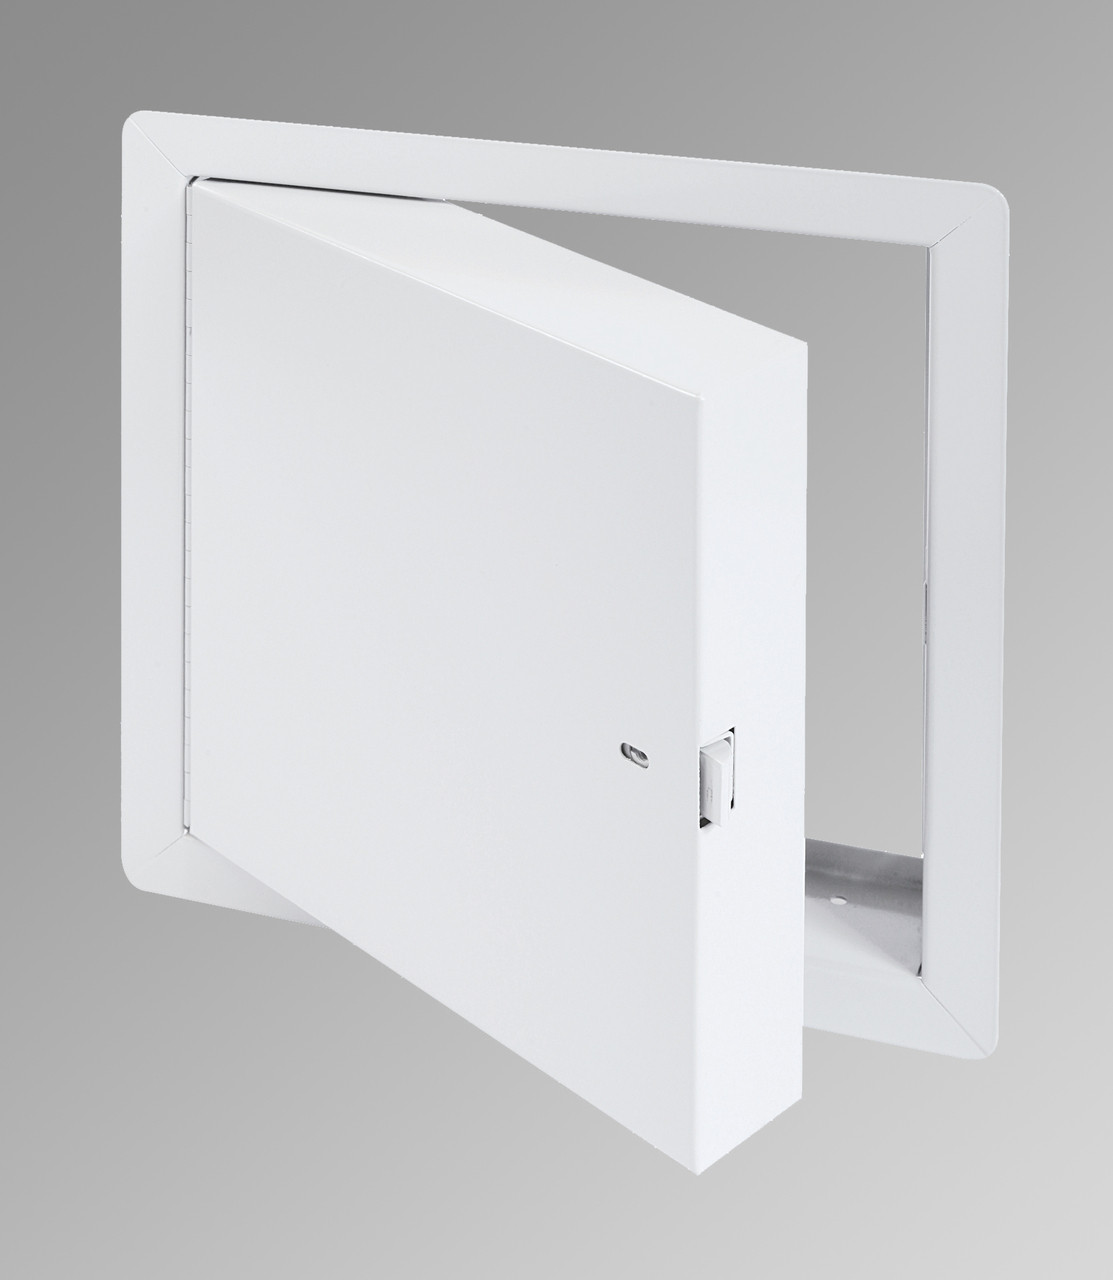 14 Quot X 14 Quot Fire Rated Insulated Access Door With Flange